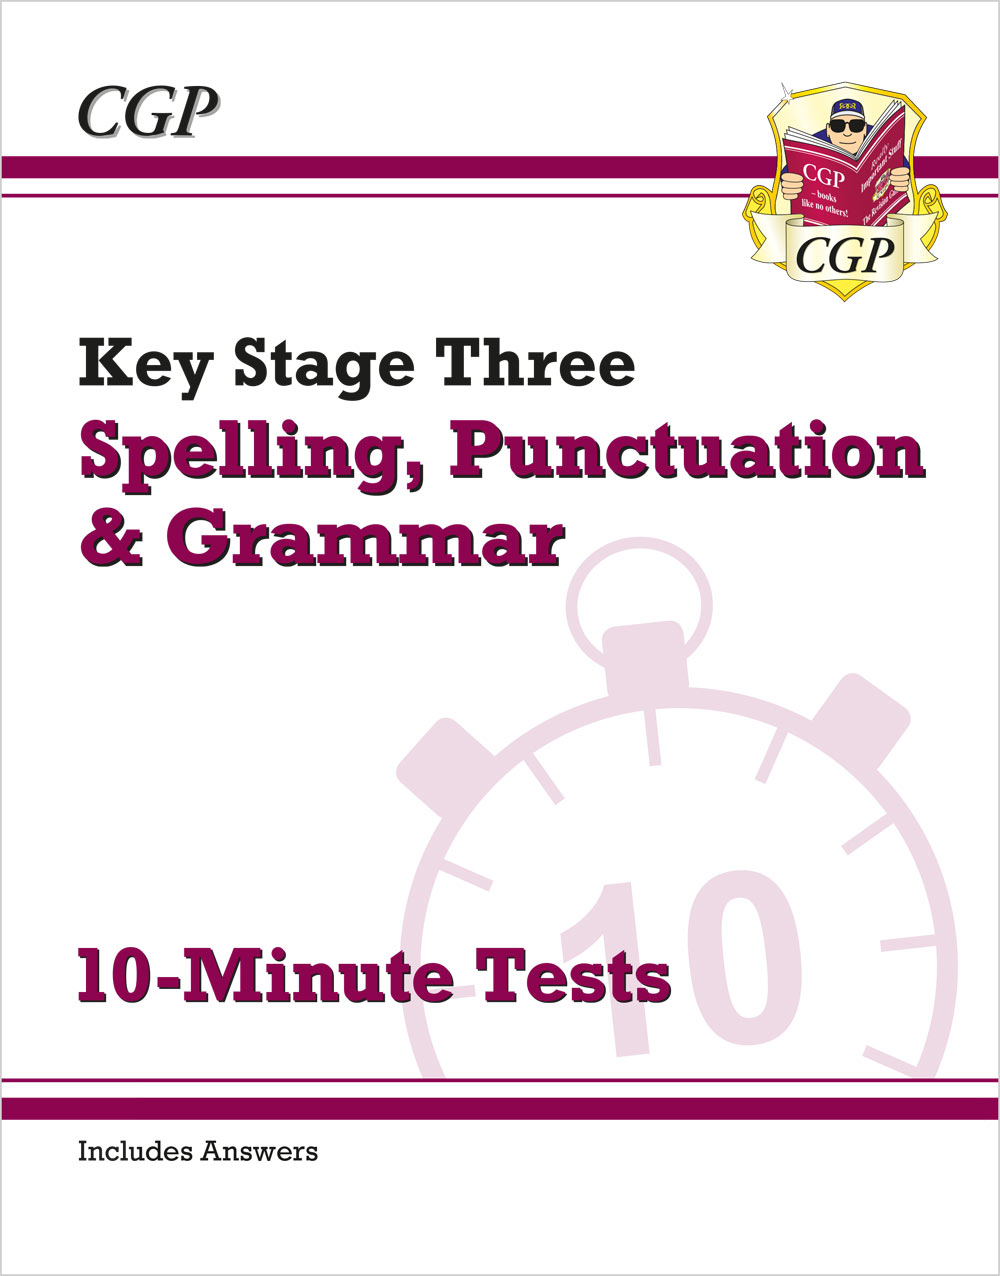 EGXP31 - New KS3 Spelling, Punctuation and Grammar 10-Minute Tests (includes answers)